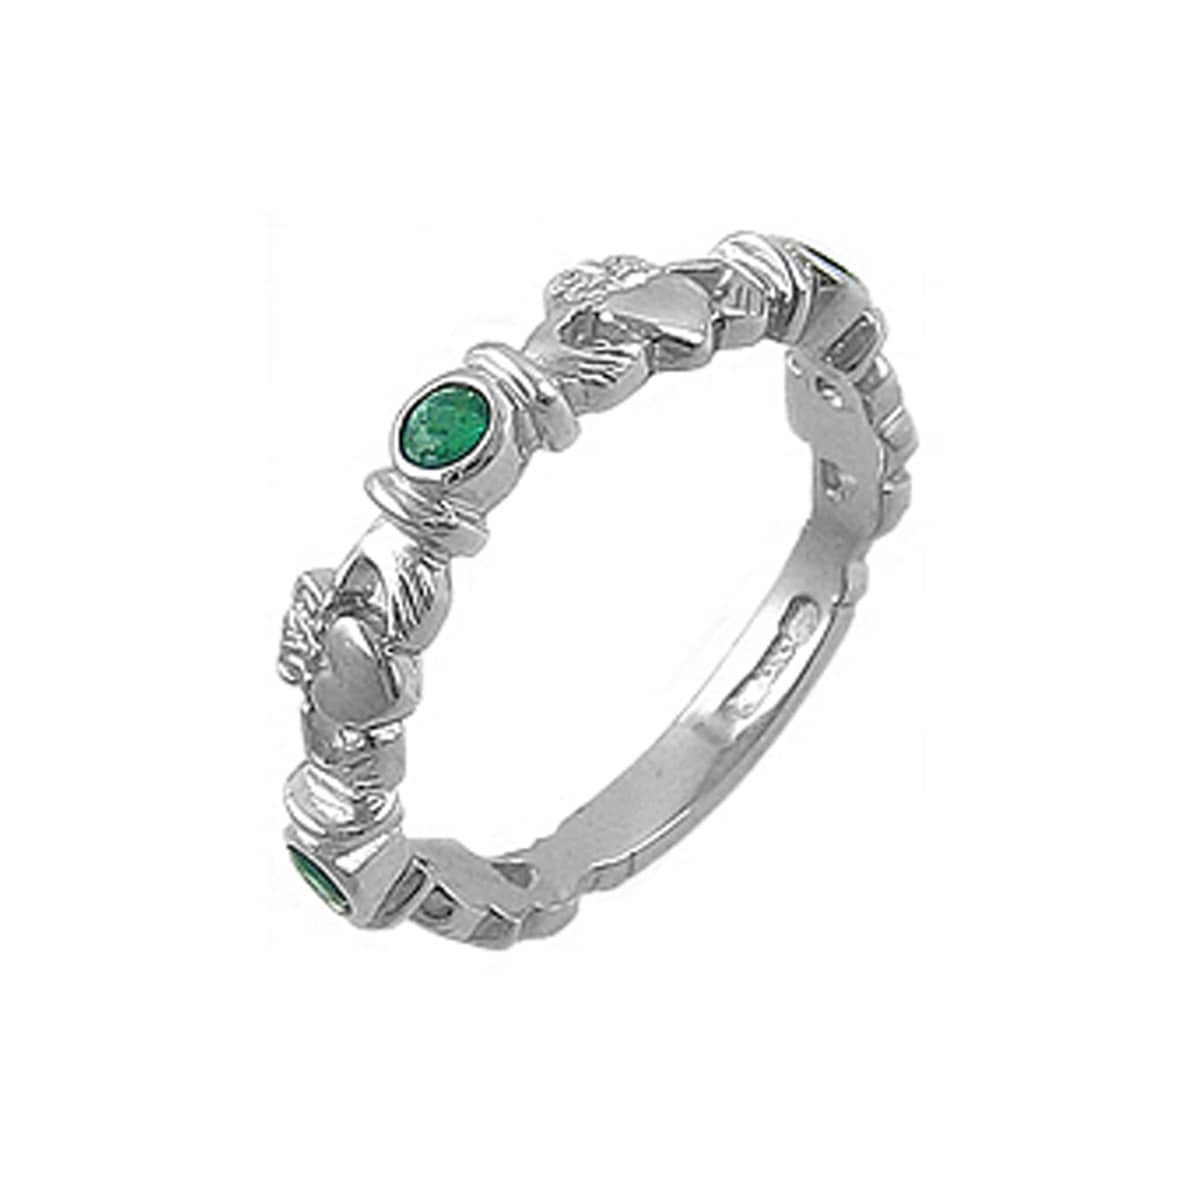 White Gold 3 Stone Emerald Claddagh Ring